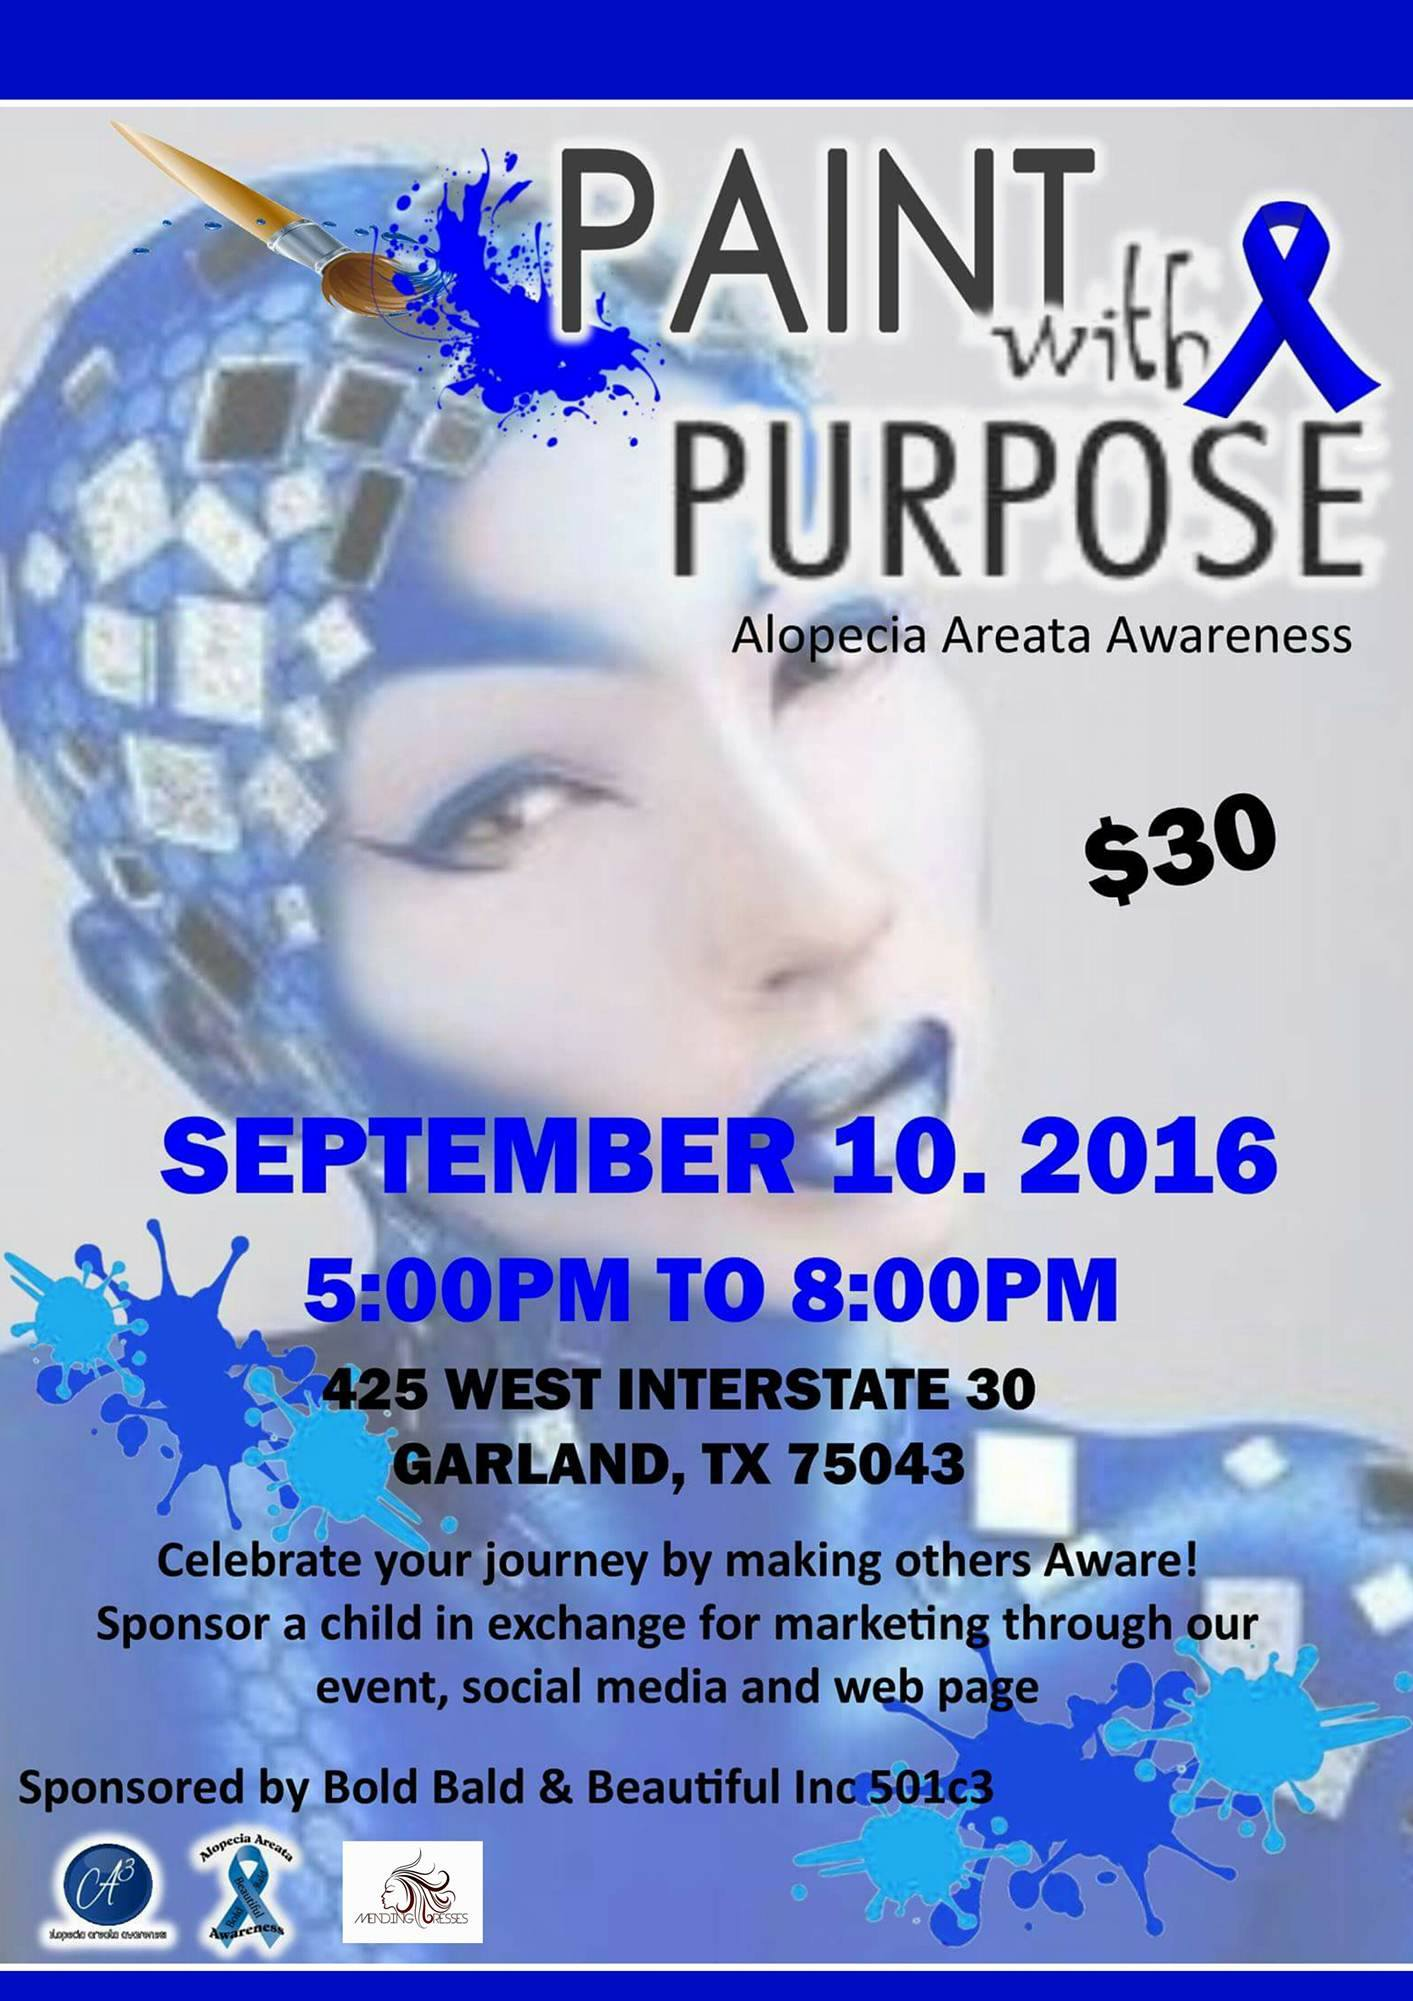 Paint with a Purpose Fundraiser